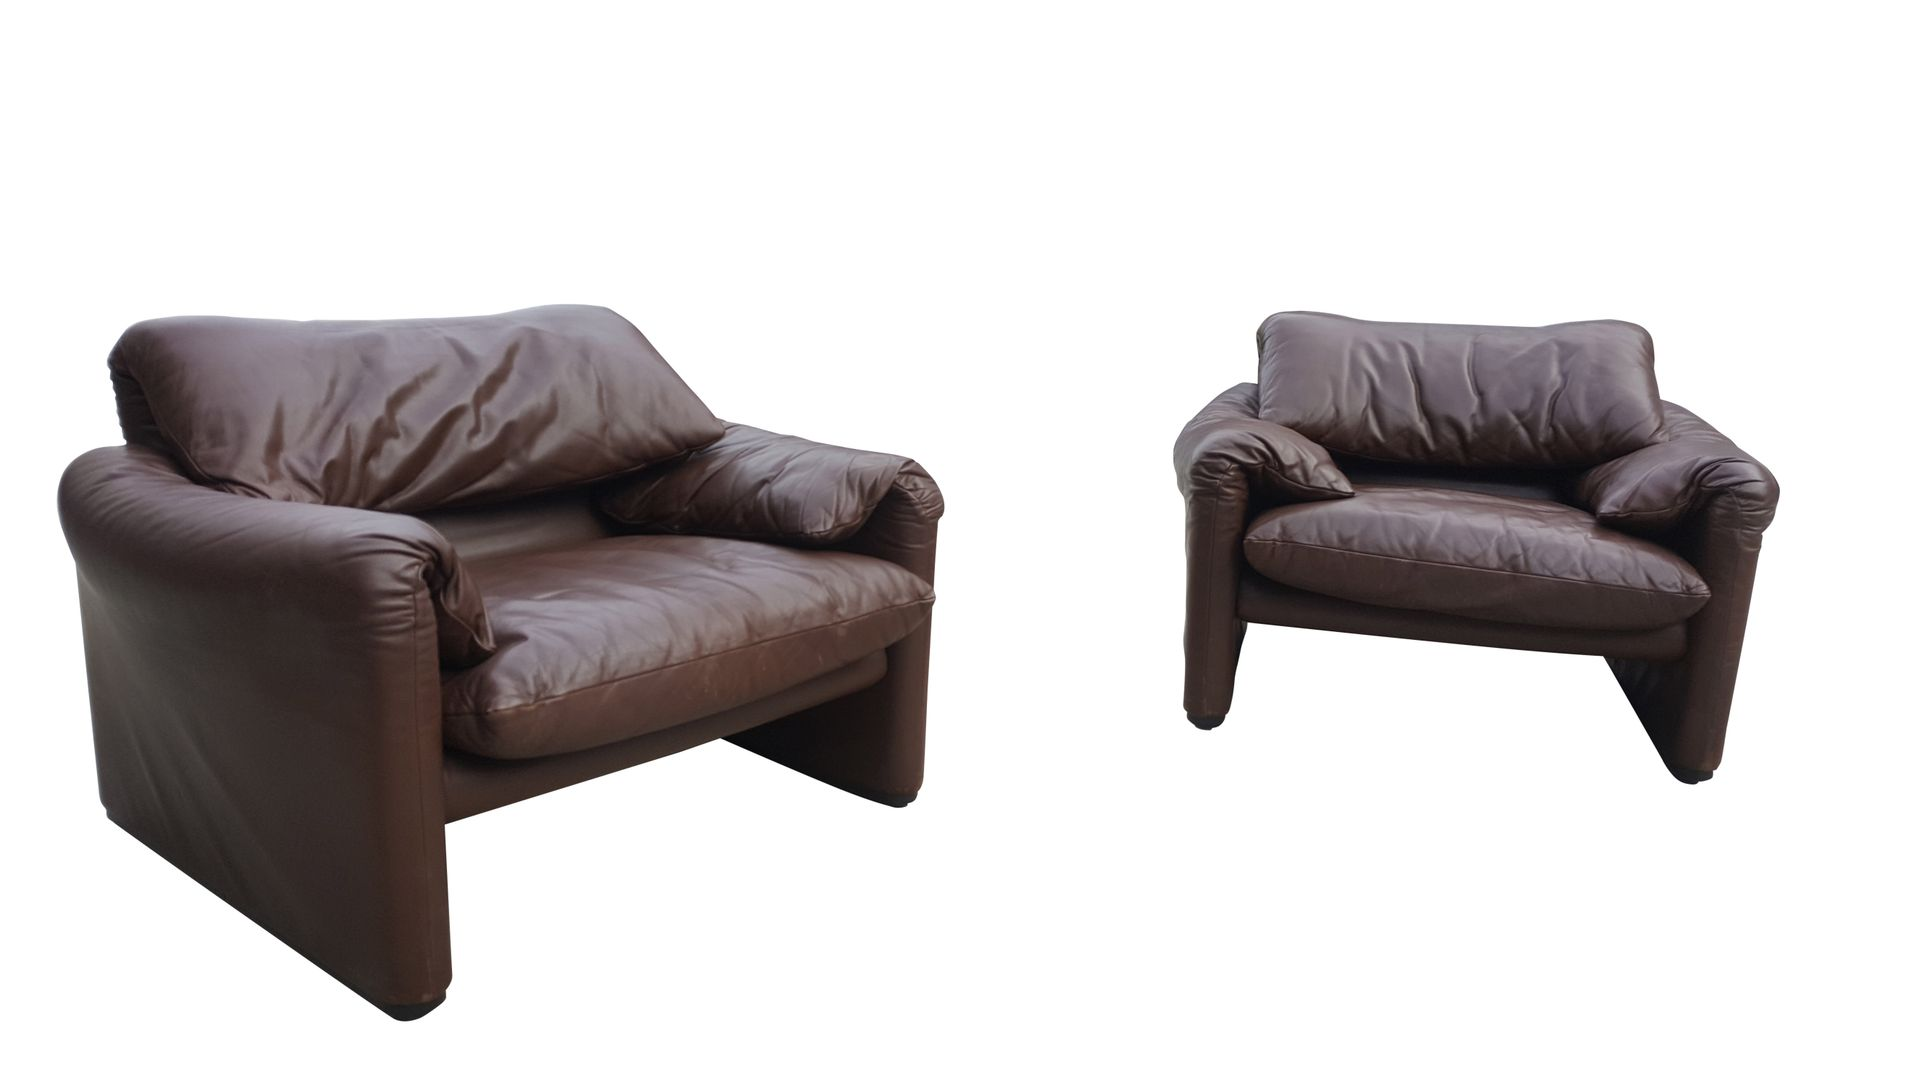 Chocolate Brown Living Room Set By Vico Magistretti For Cassina 1980s Bei Pamono Kaufen